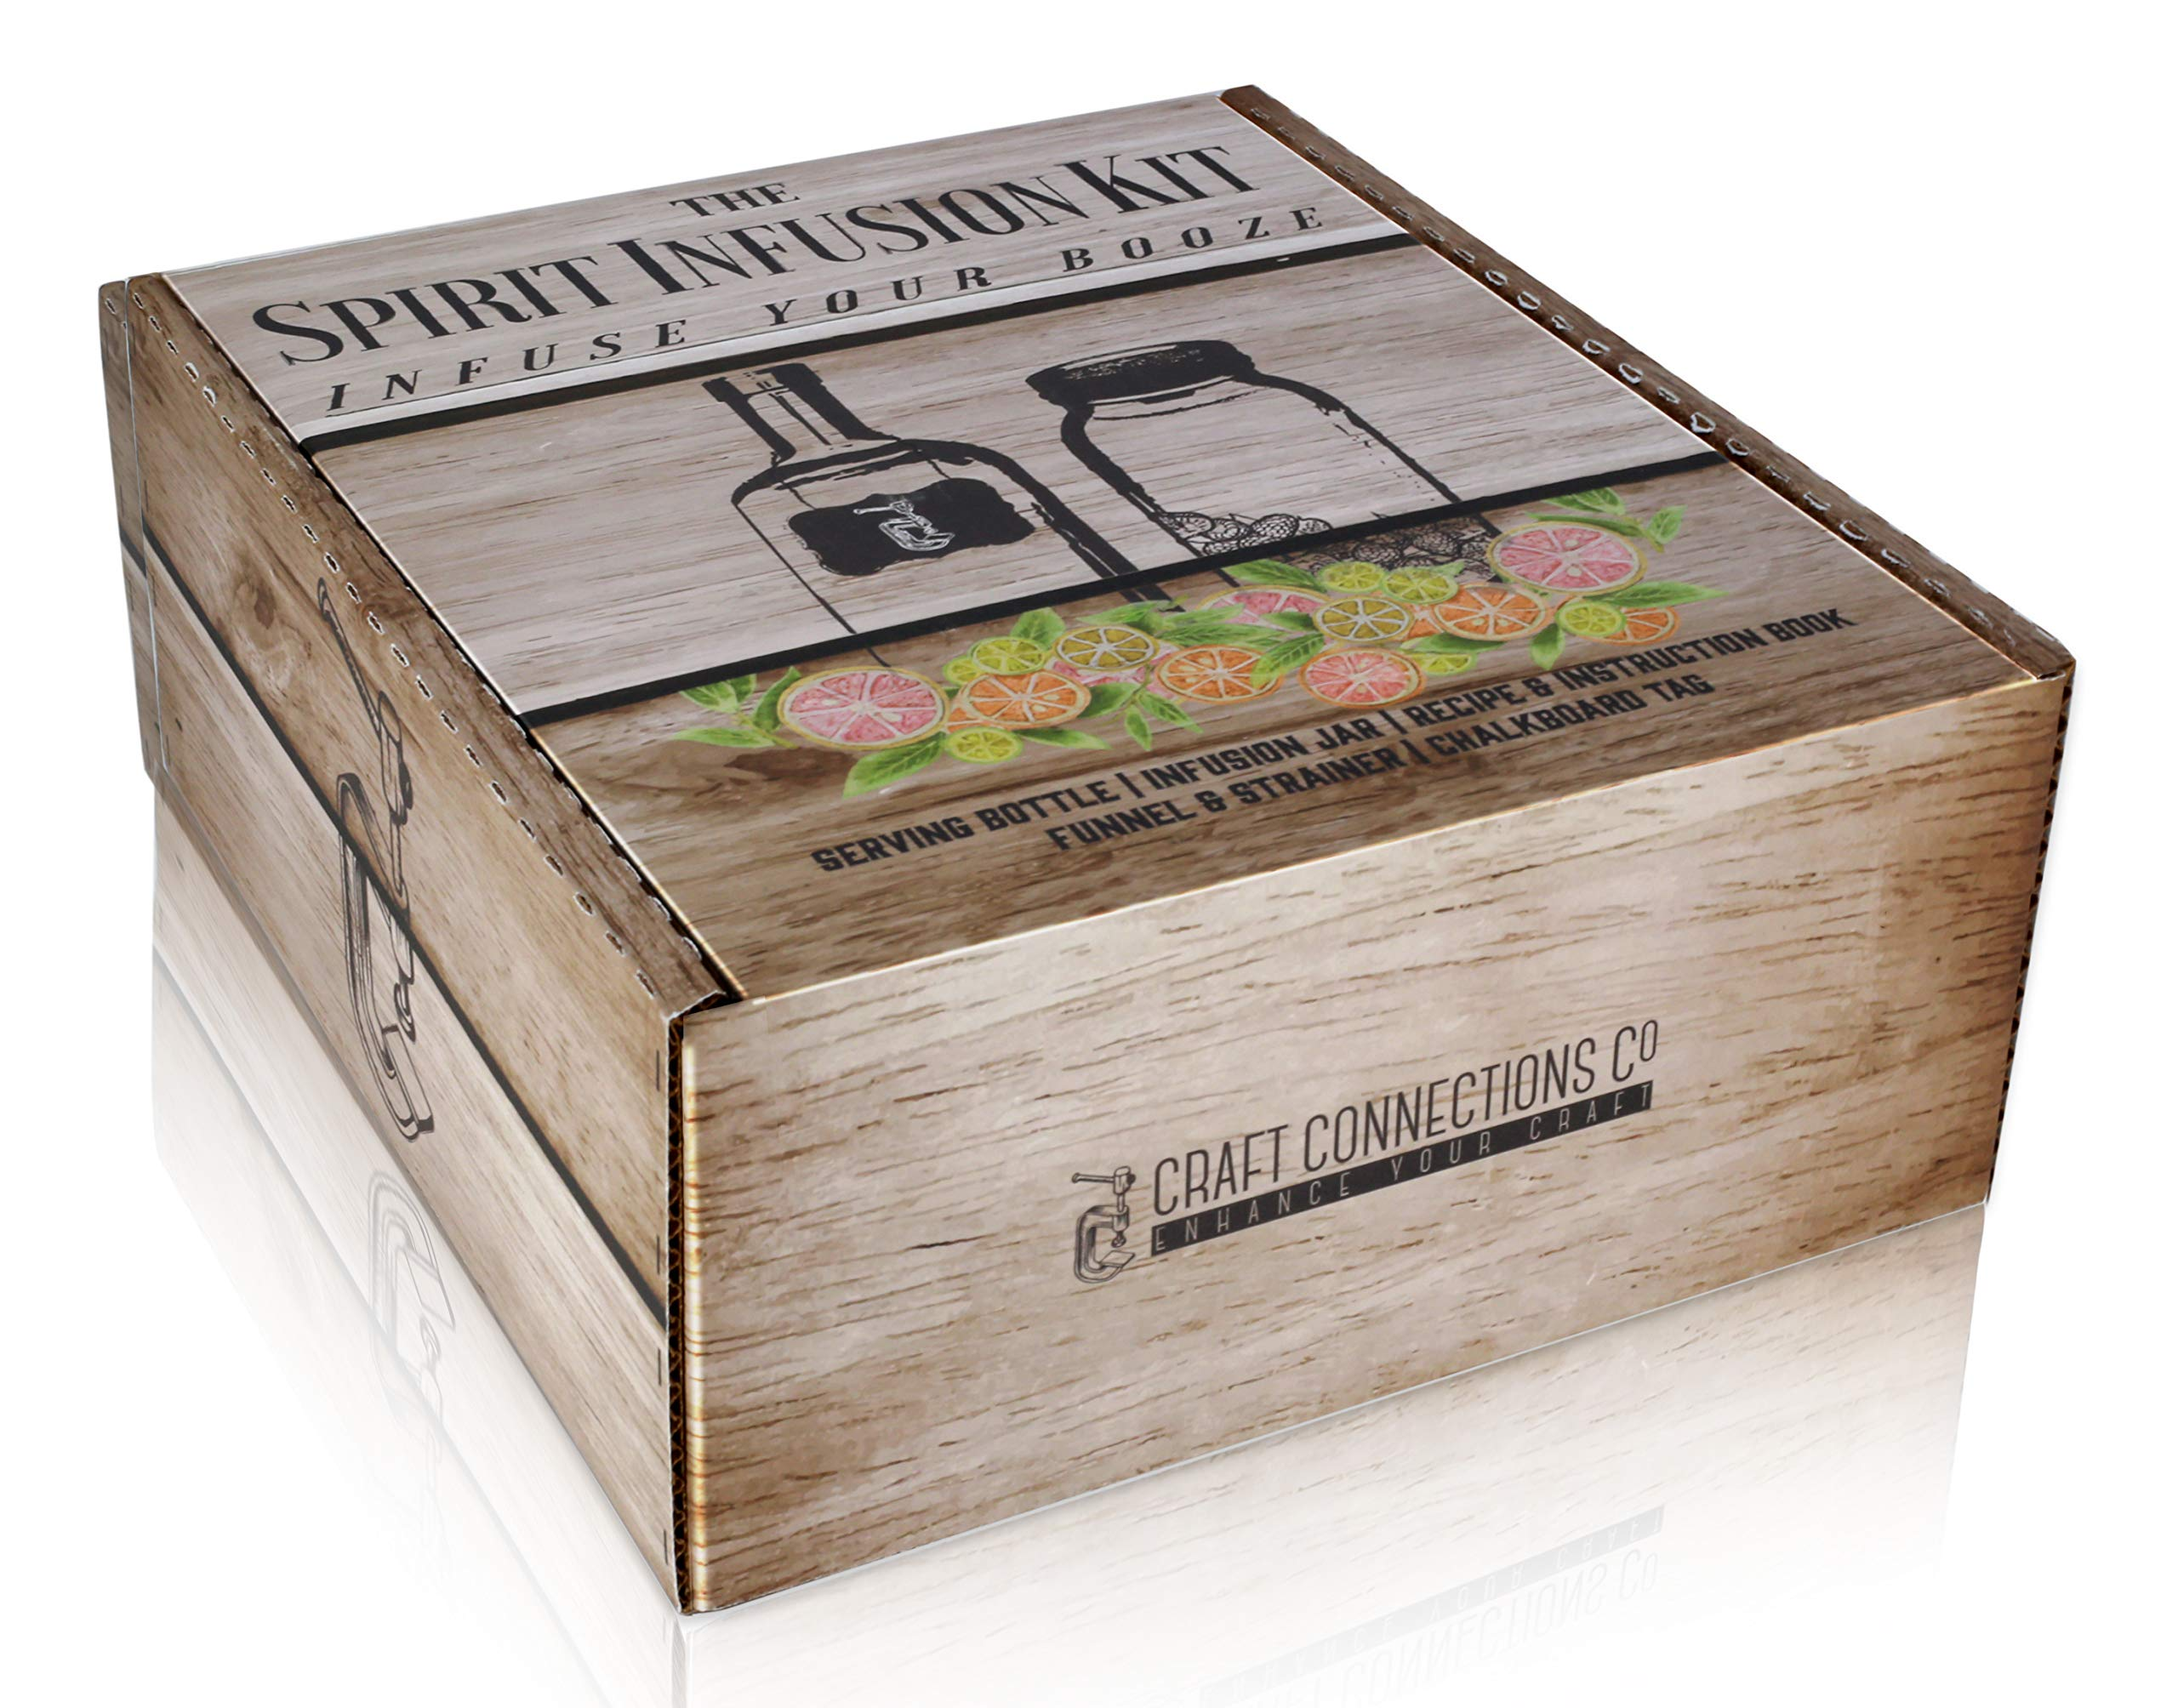 The SPIRIT INFUSION KIT - Infuse Your Booze! 70+ Homemade Flavored Vodka Recipes. Become an Infused Alcohol Cocktail Mixologist using the 110pg Recipe and Instruction Book. Great Gift & Party Hit! by Craft Connections Co. (Image #6)